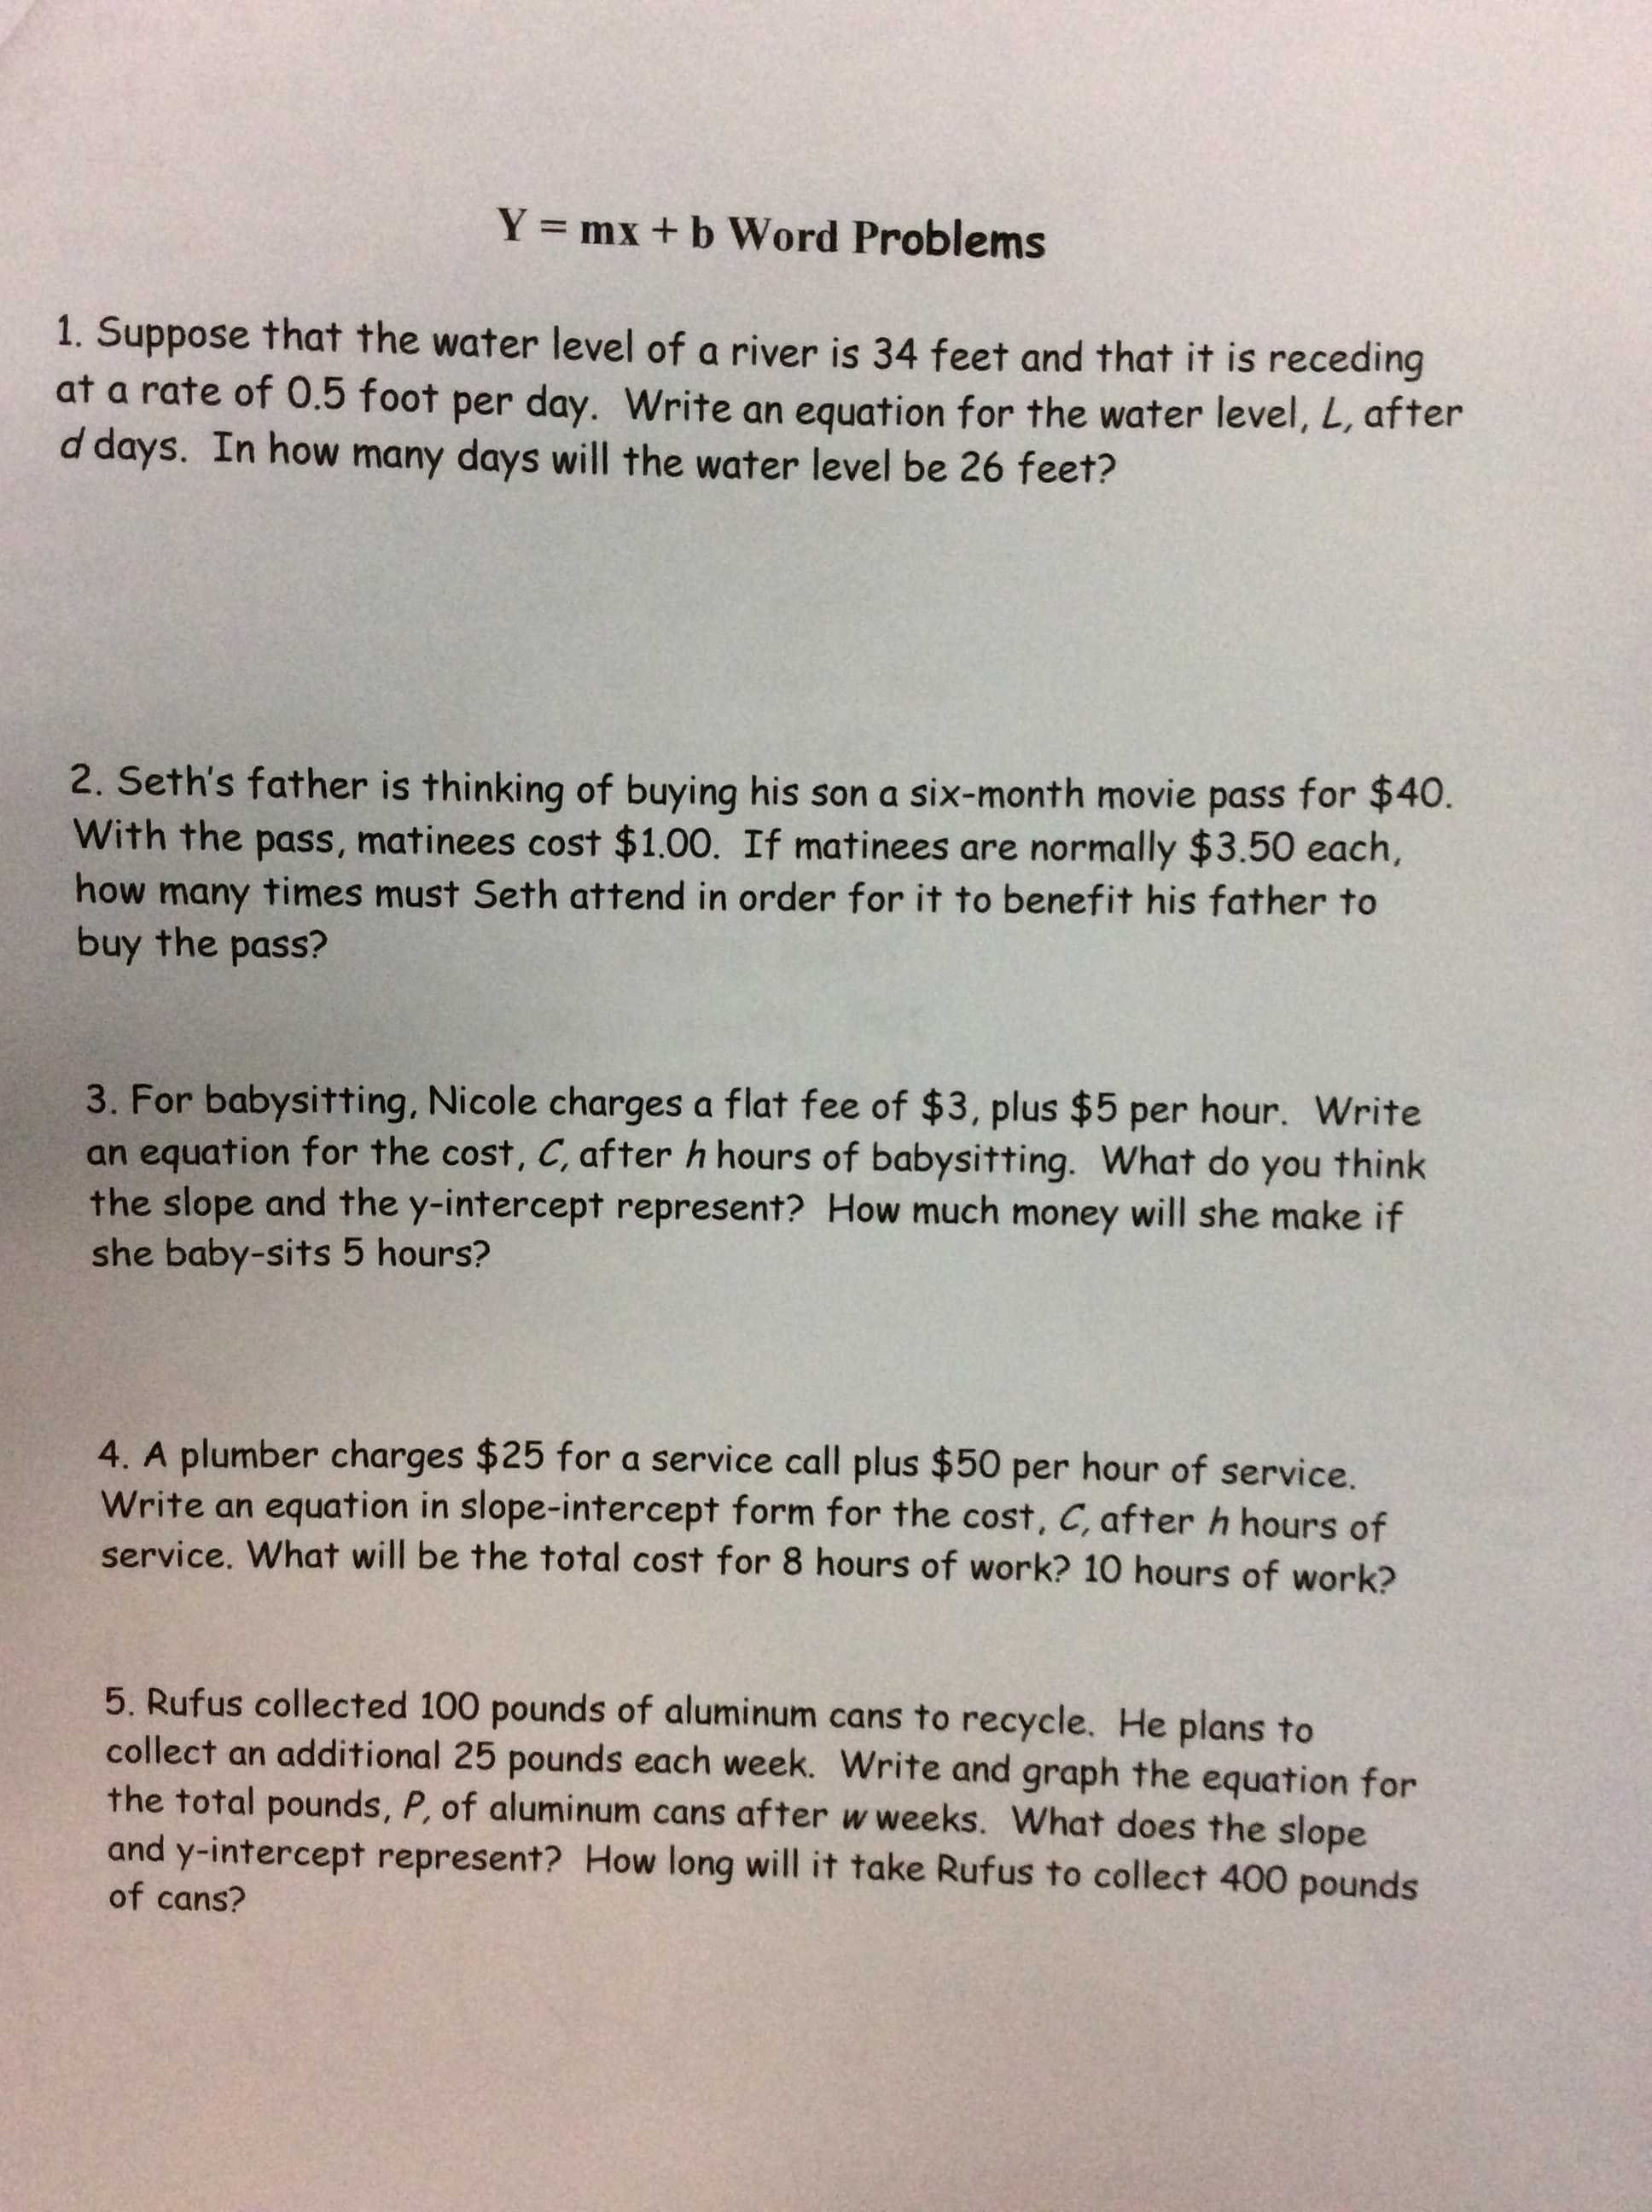 Simple and Compound Interest Practice Worksheet Answer Key as Well as Gorzycki Middle School